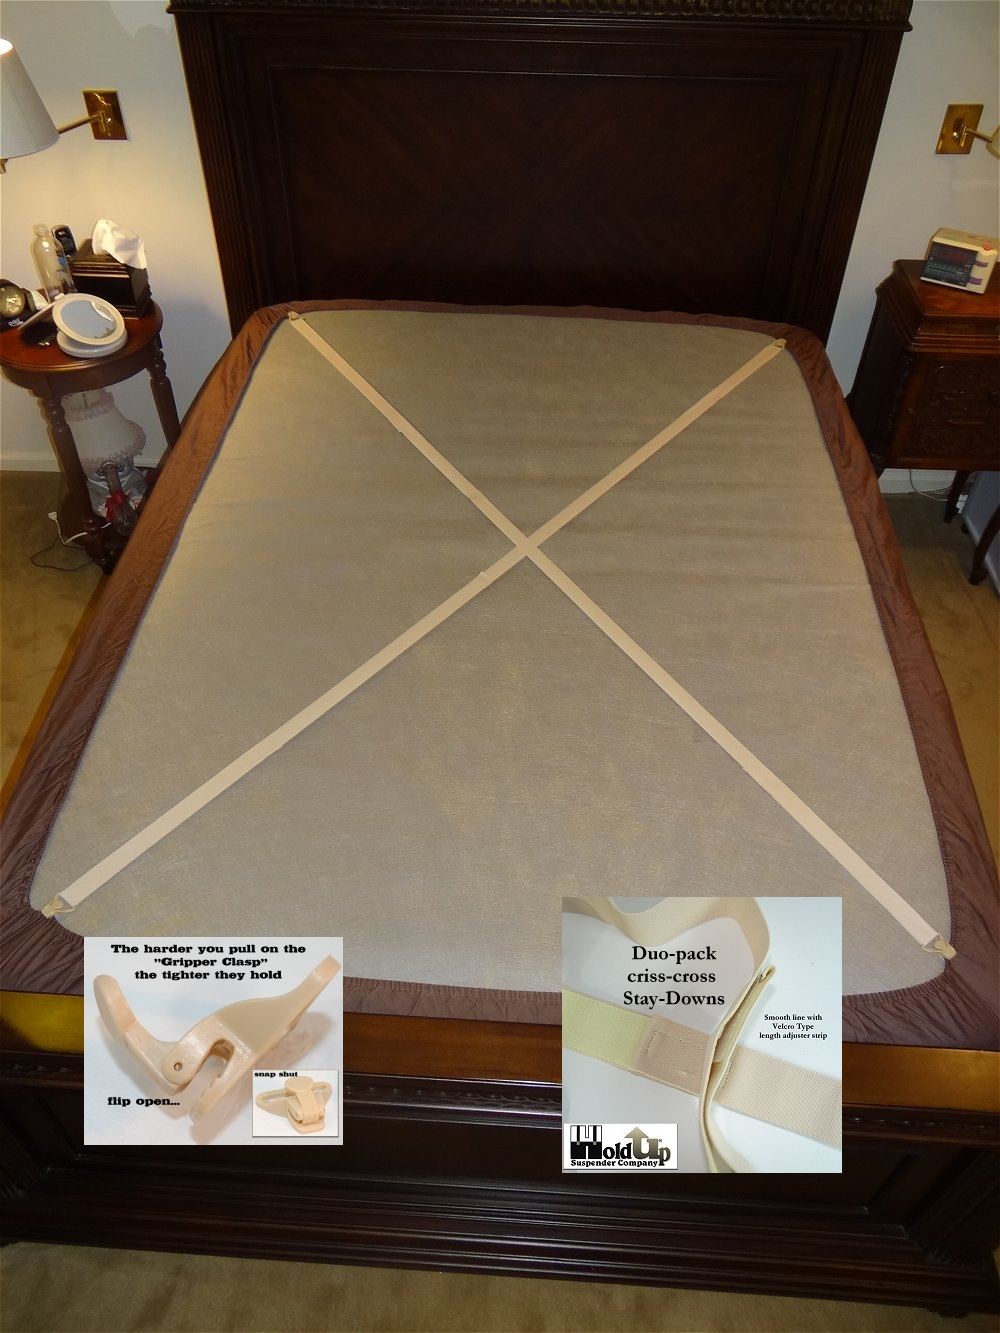 High Quality Bed Straps Or Fitted Sheet Suspendewrs Designed To Simply Crisscross Corner  To Corner Any Size Mattress